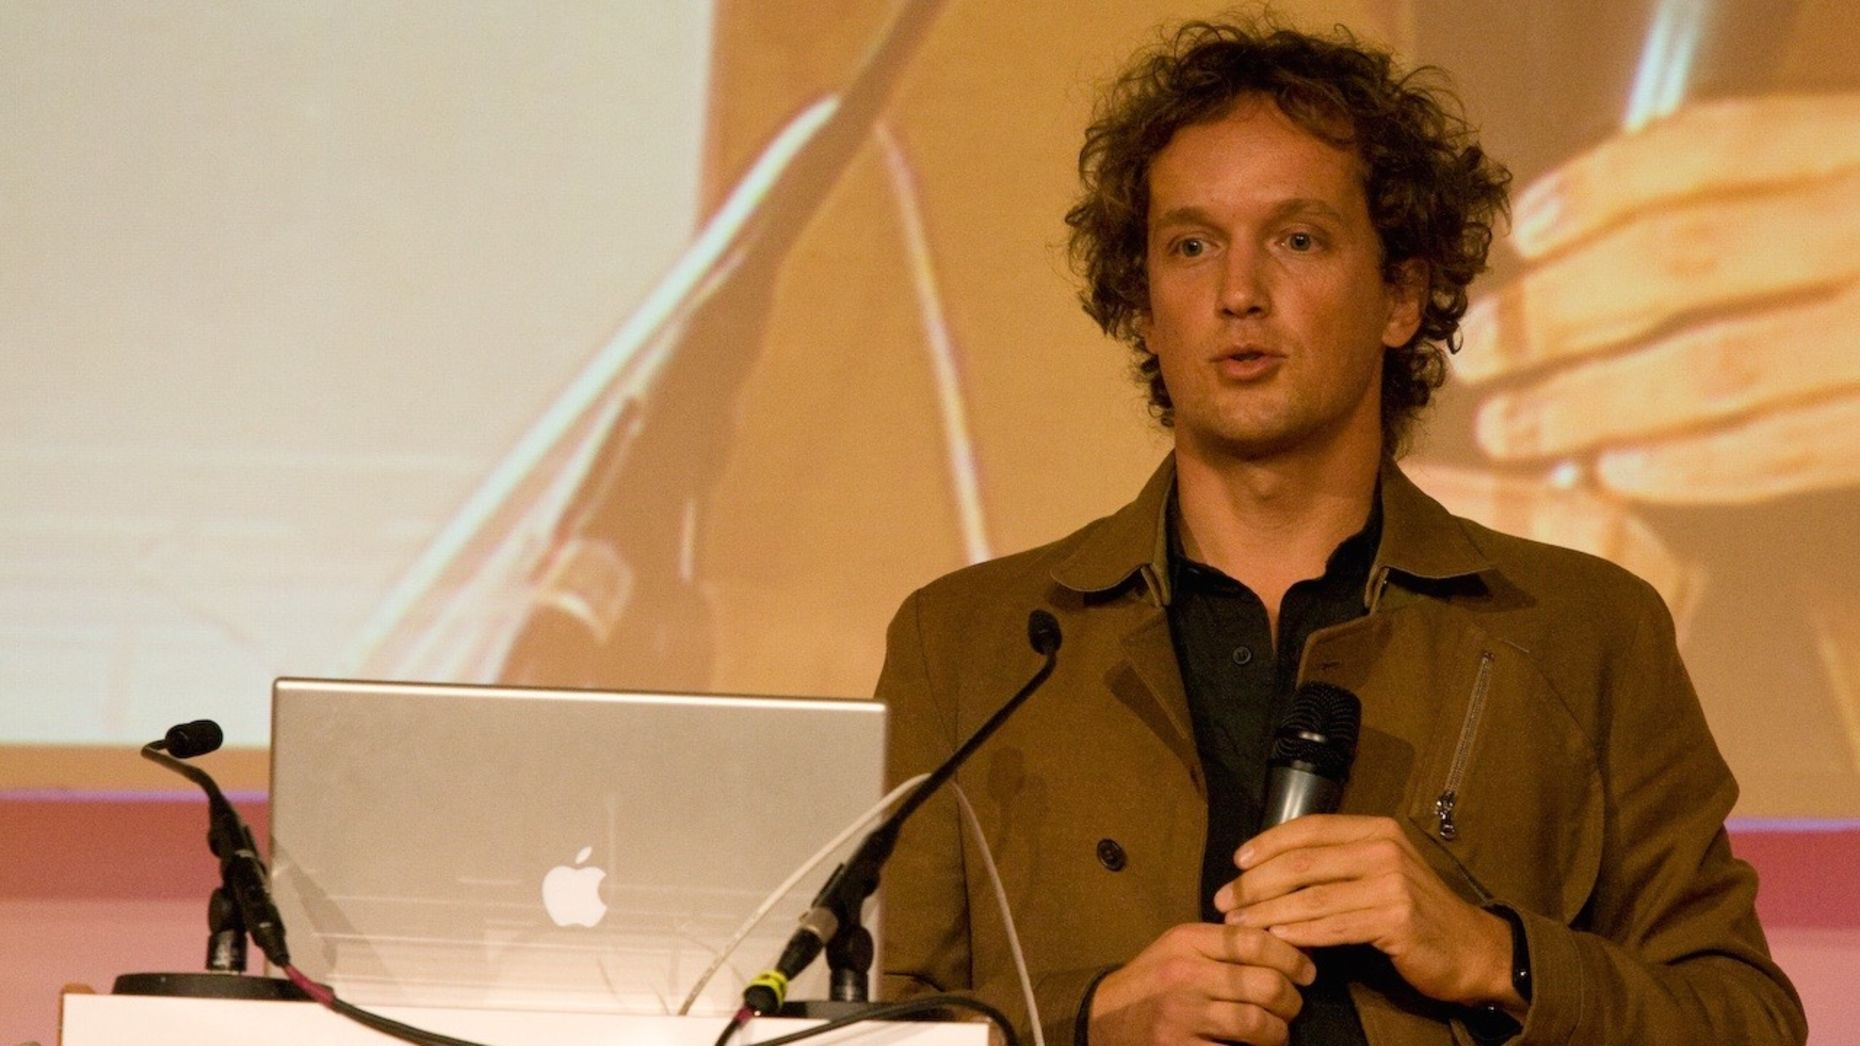 August Home co-founder Yves Behar. Photo by Flickr/Eirik Solheim.